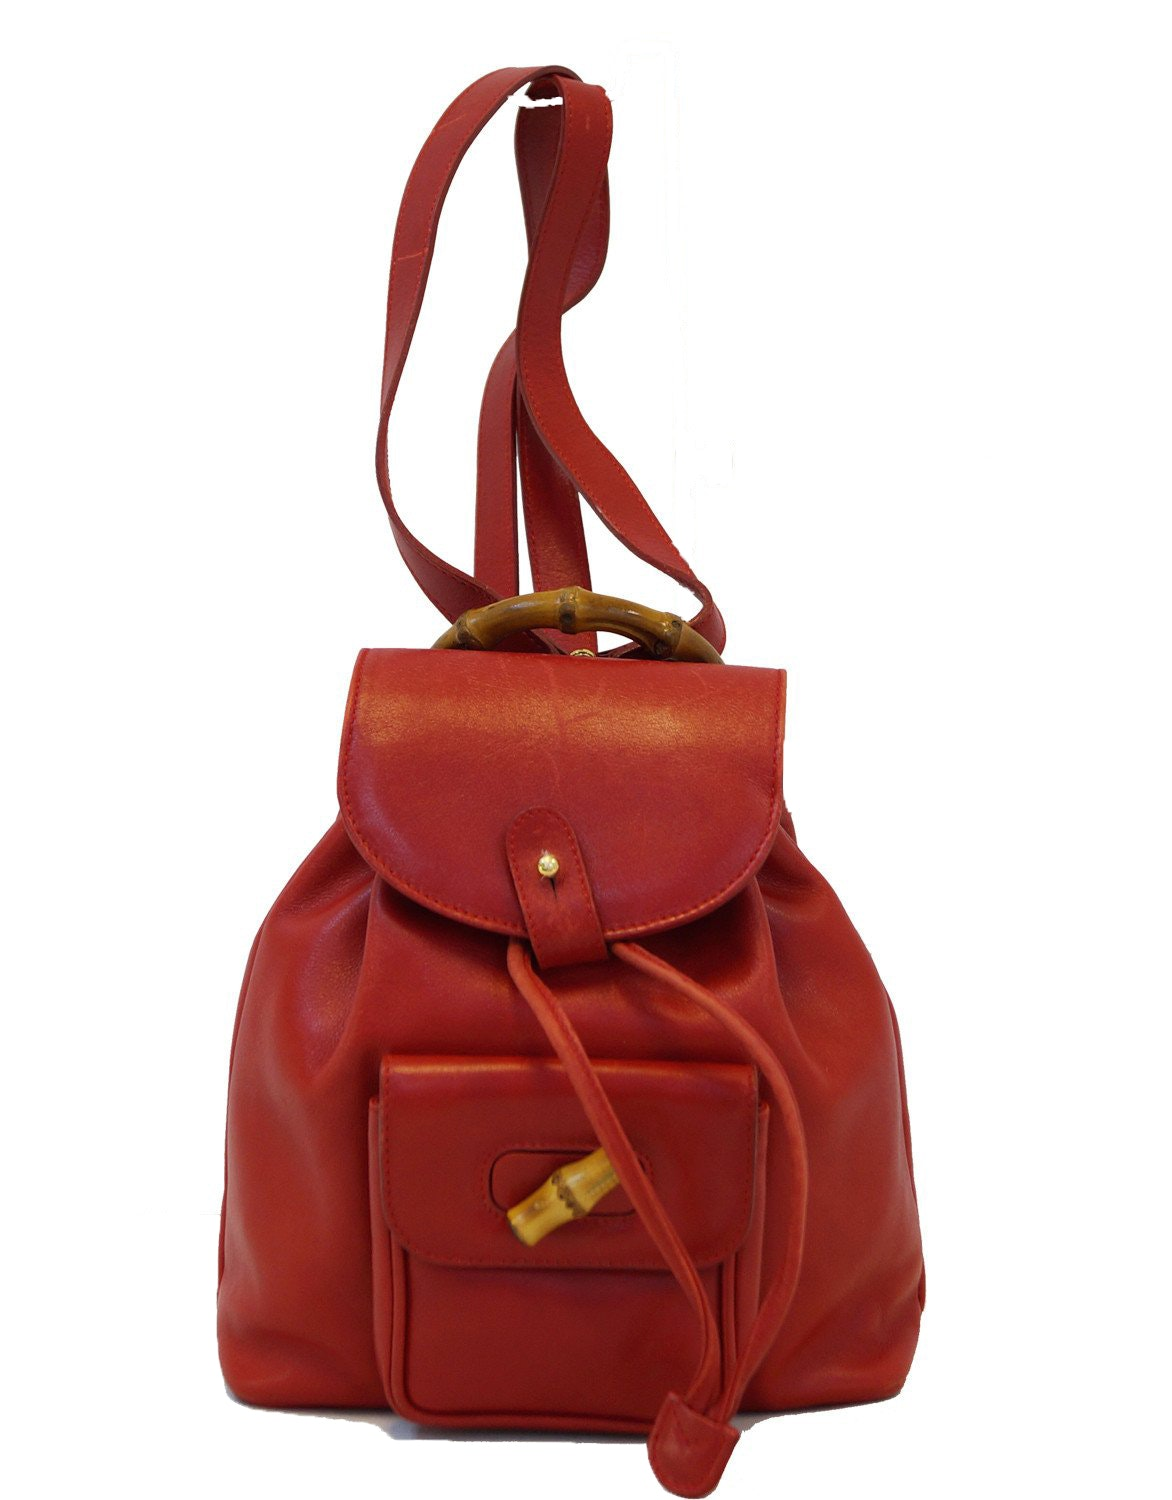 Gucci Bamboo Backpack Mini Leather Red